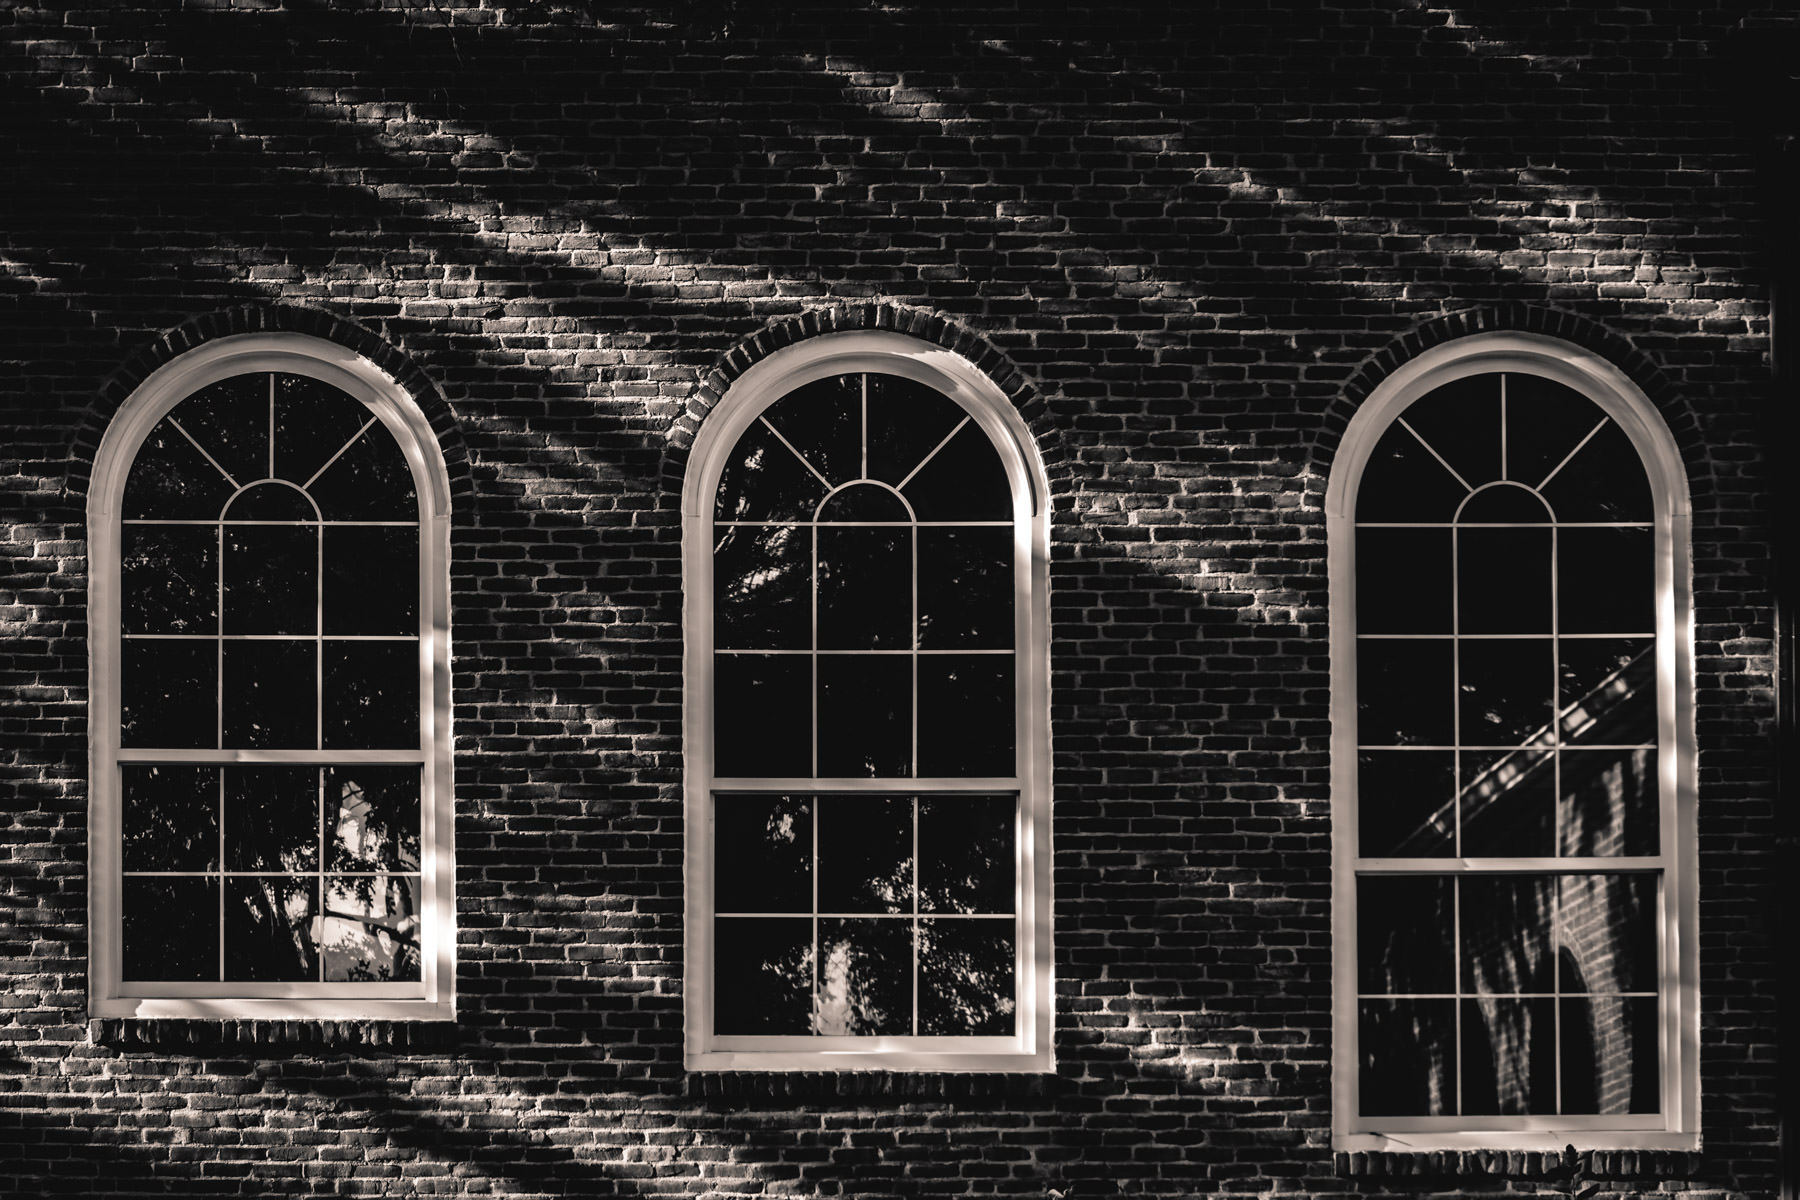 A trio of windows spotted on the campus of Tyler Junior College, Tyler, Texas.